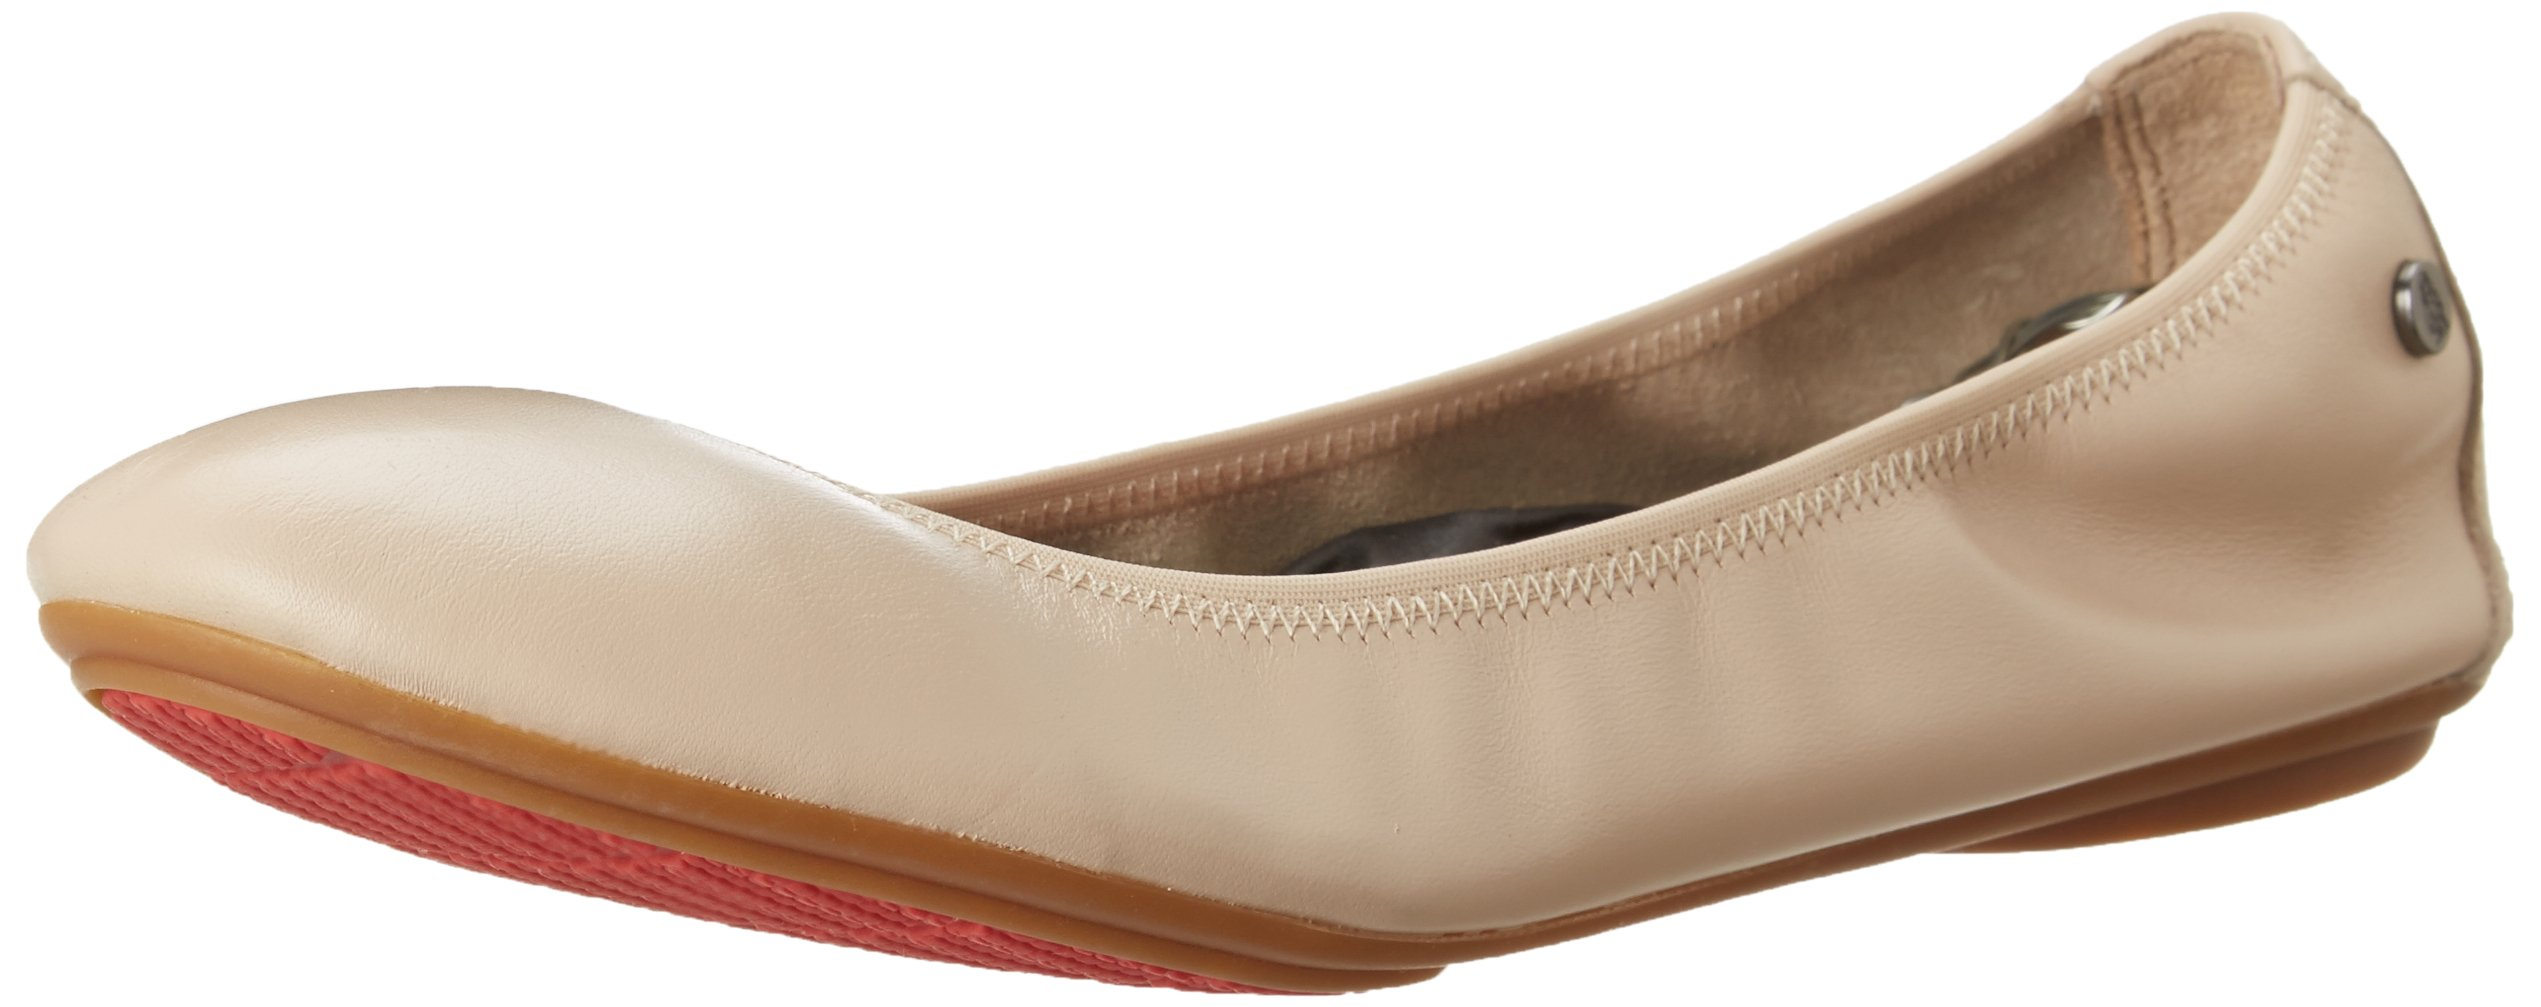 Hush Puppies Women's Chaste Ballet Shoe, nude, 8 M US by Hush Puppies